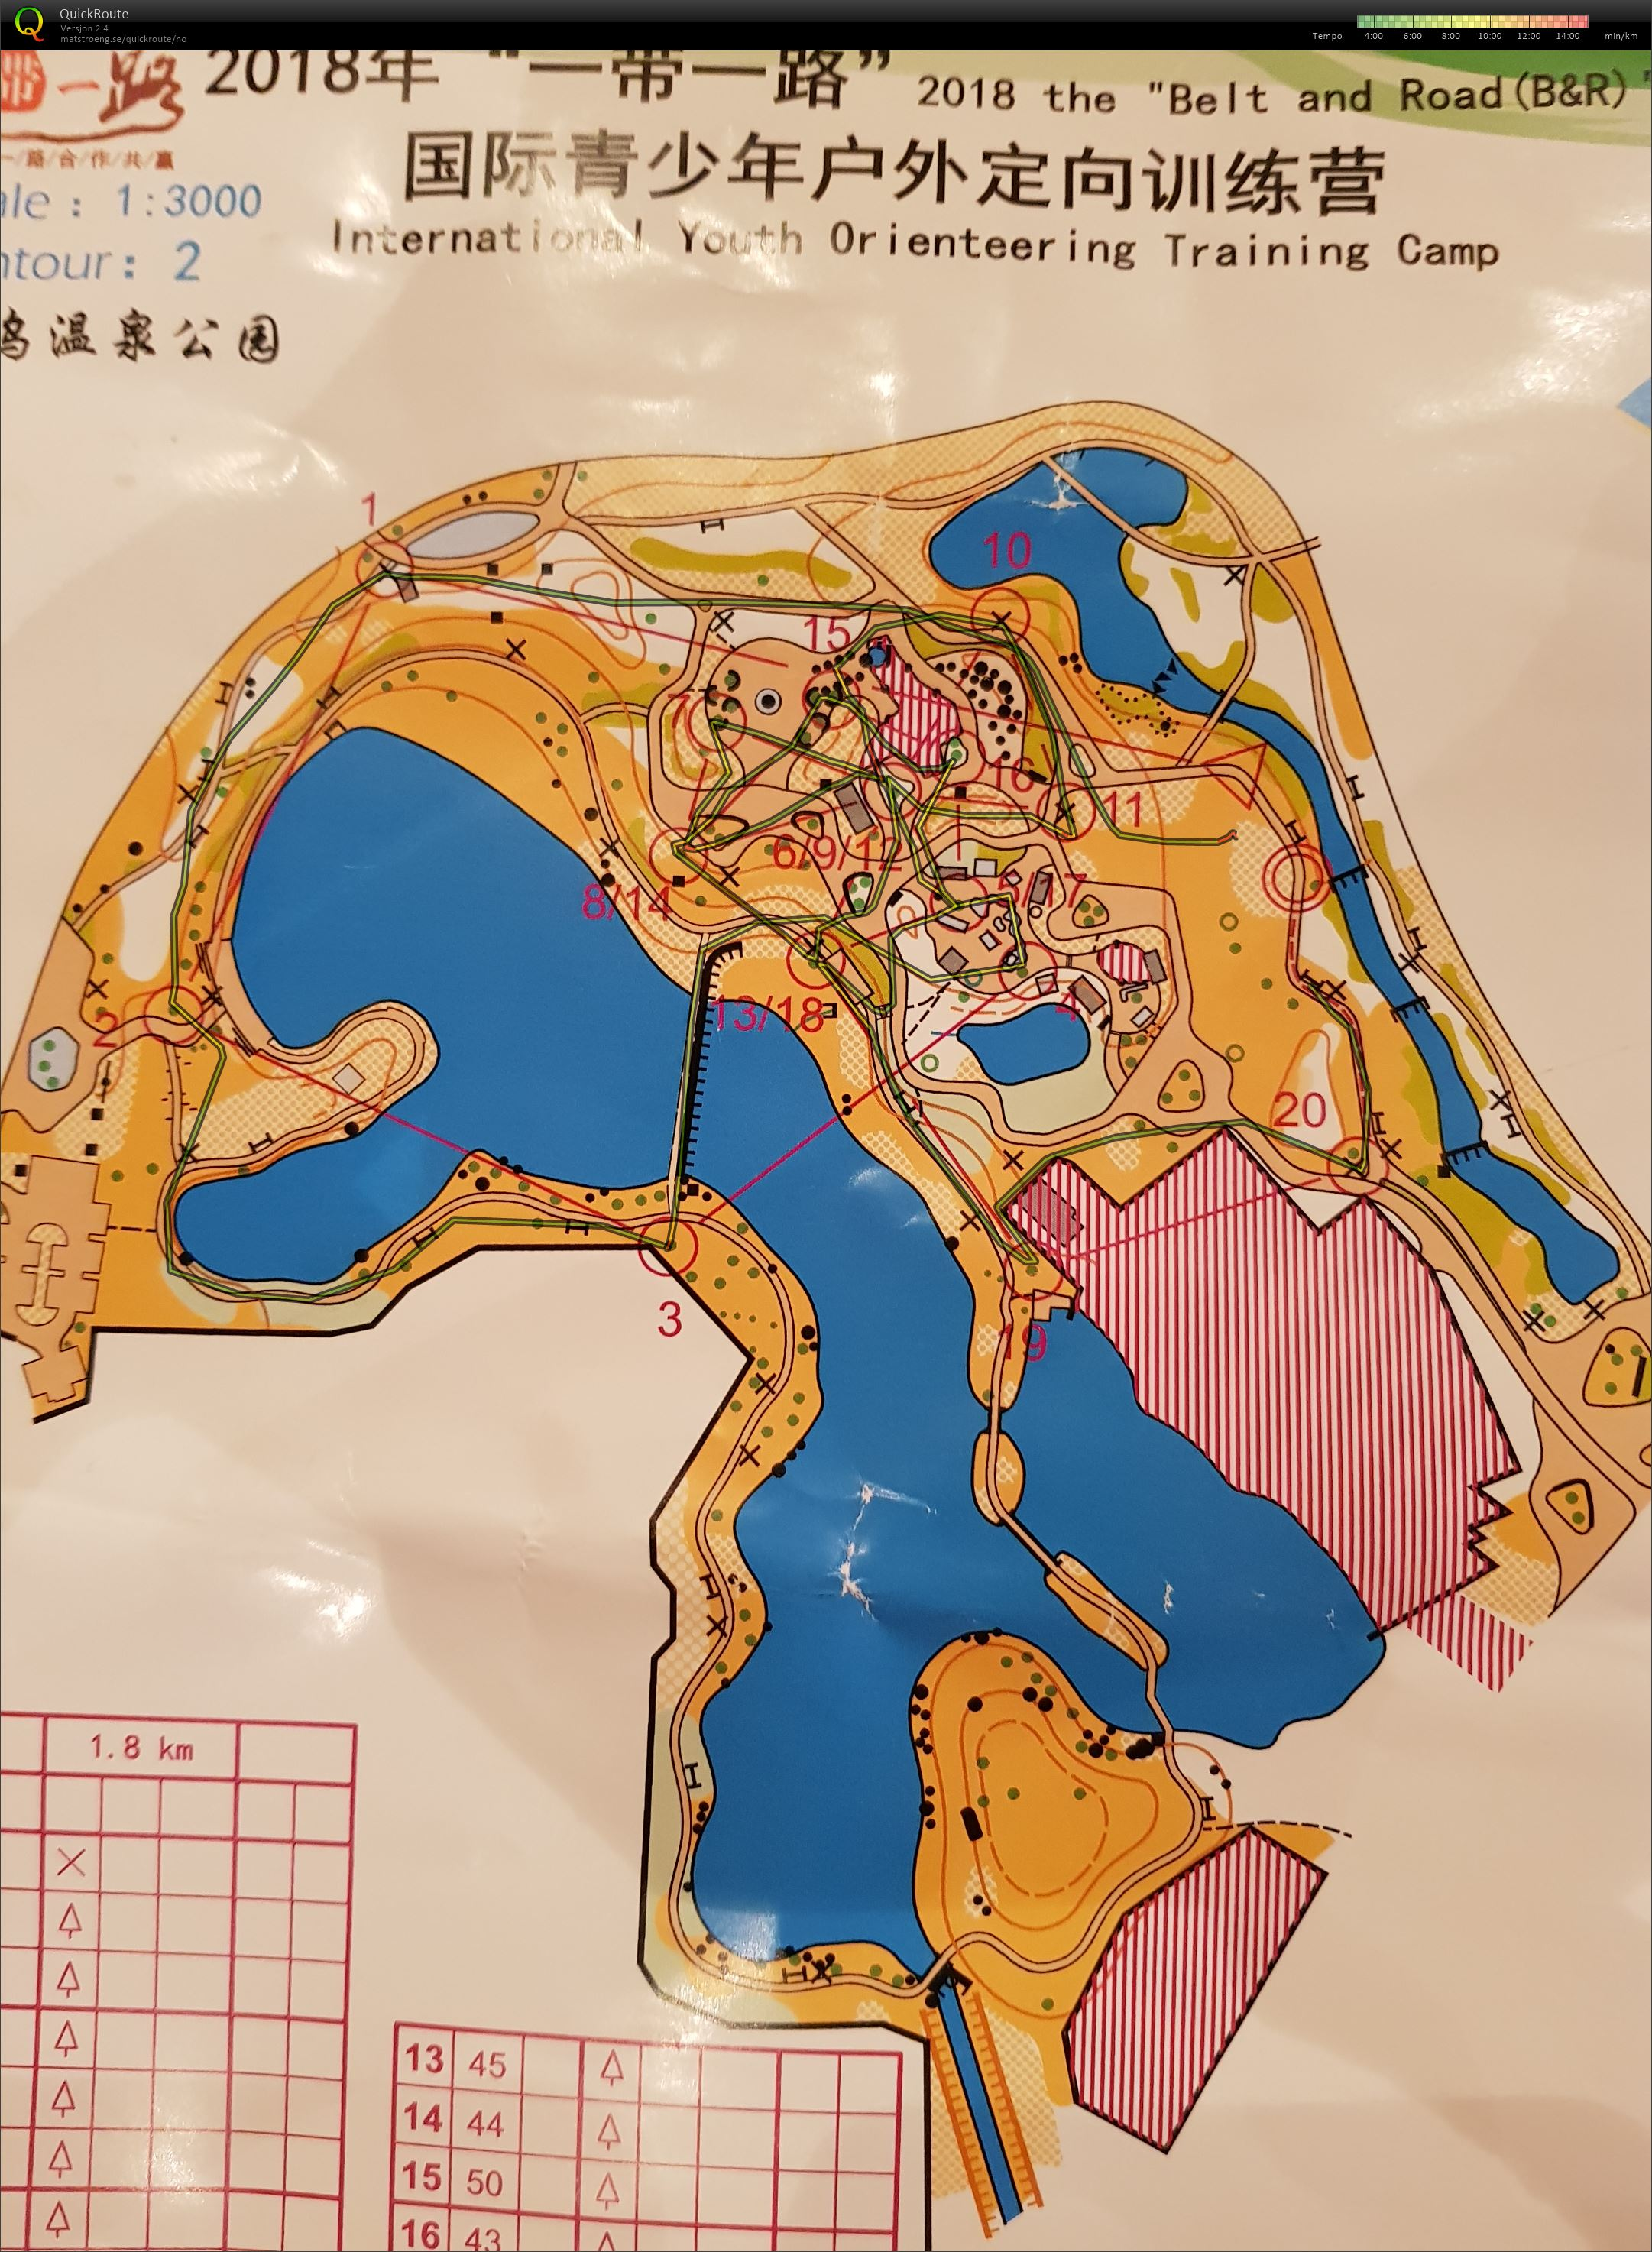 Belt and Road International Youth Orienteering Camp (27.10.2018)